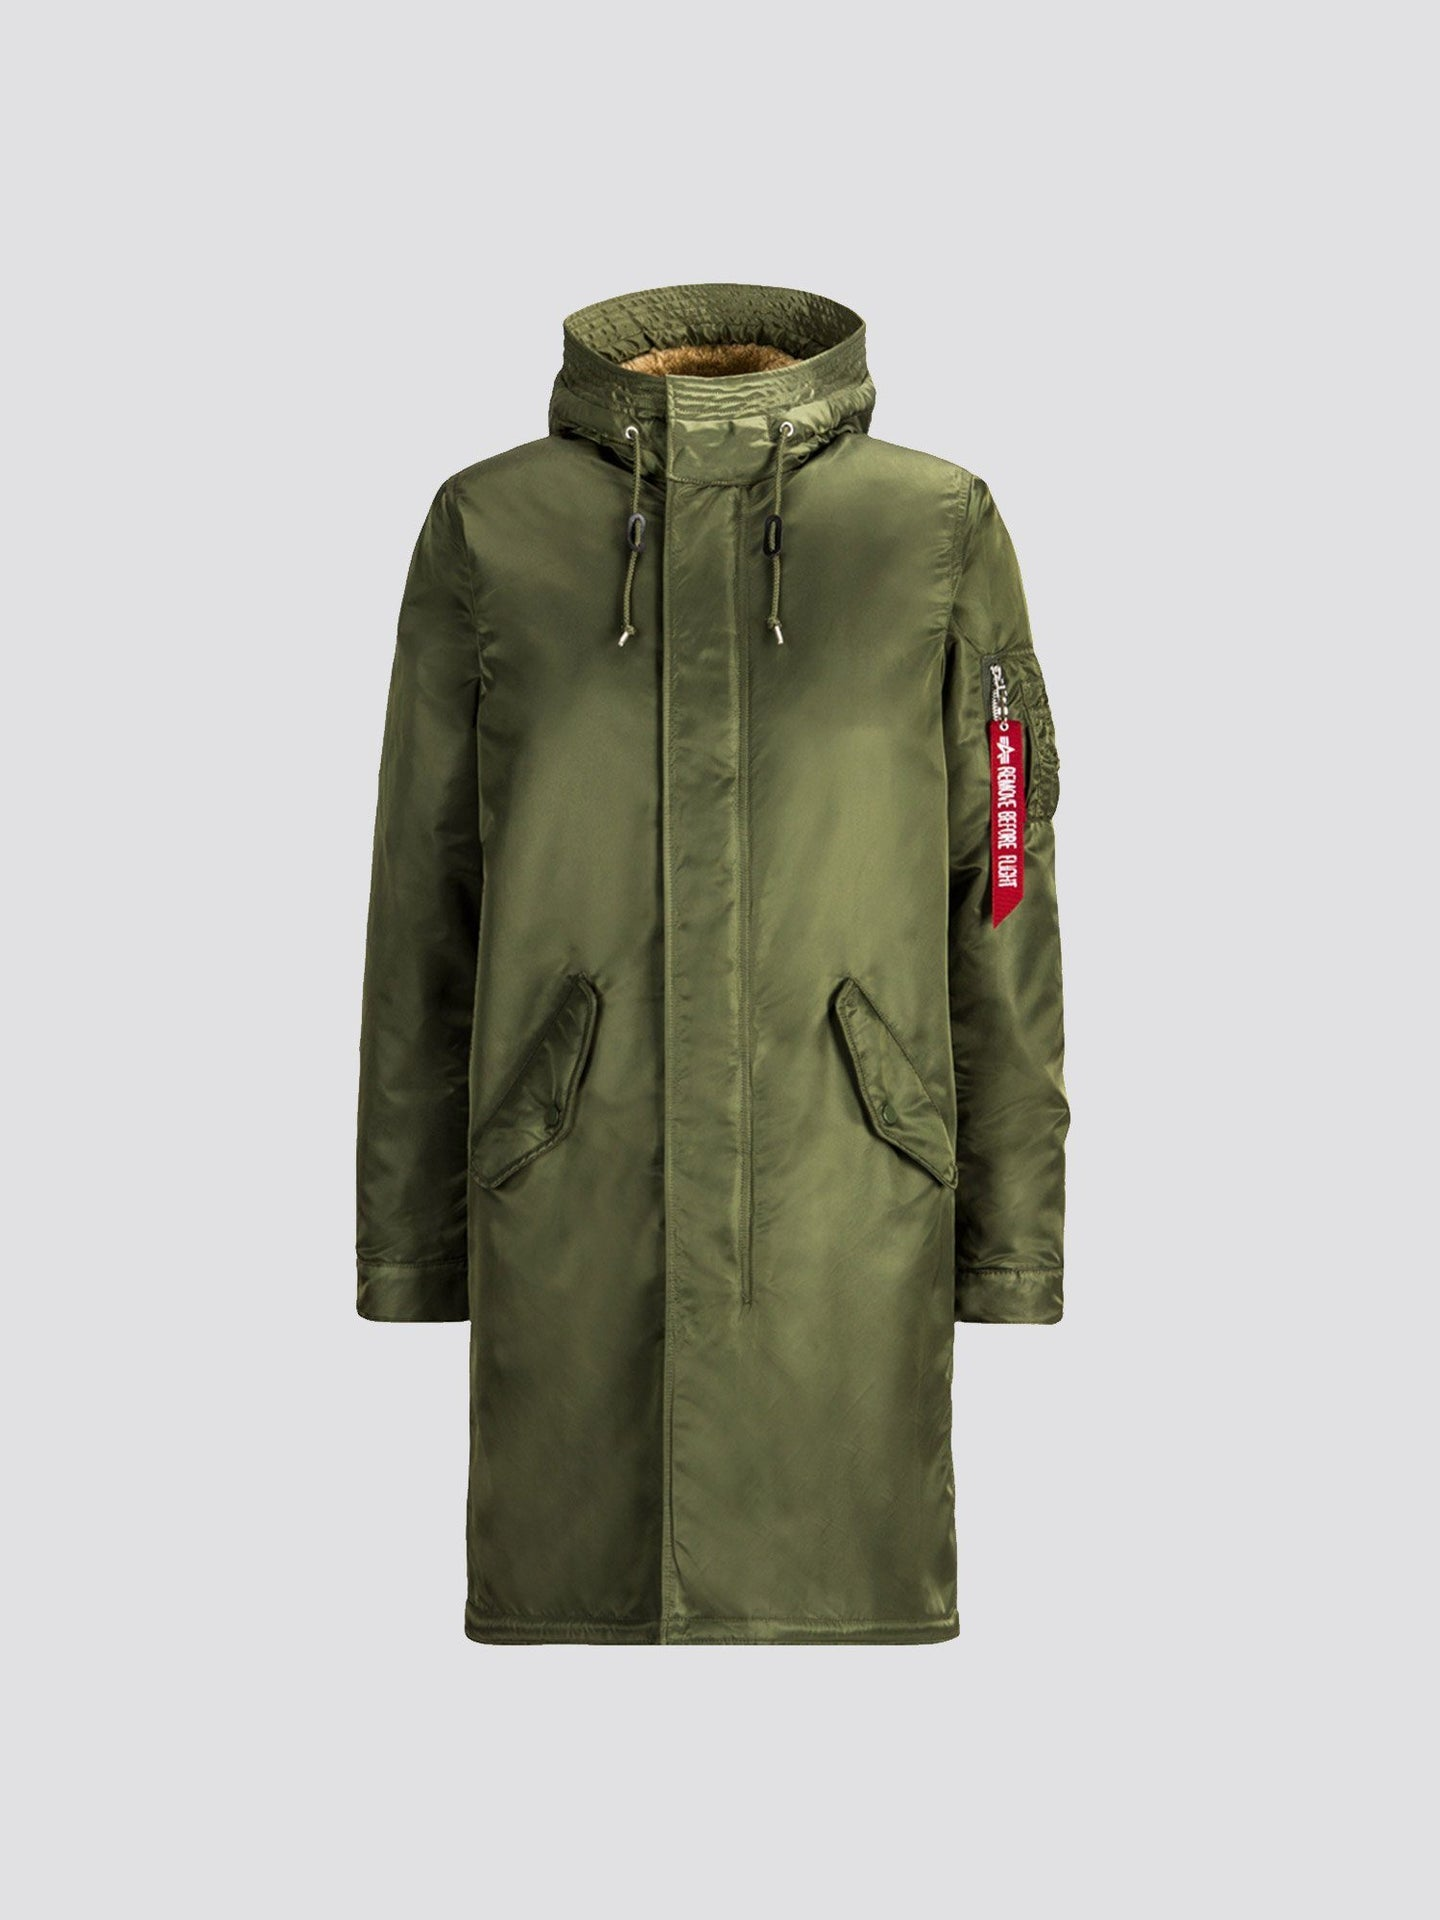 EXCLUSIVE M-65 FISHTAIL WITH SHERPA SALE Alpha Industries SAGE 2XL